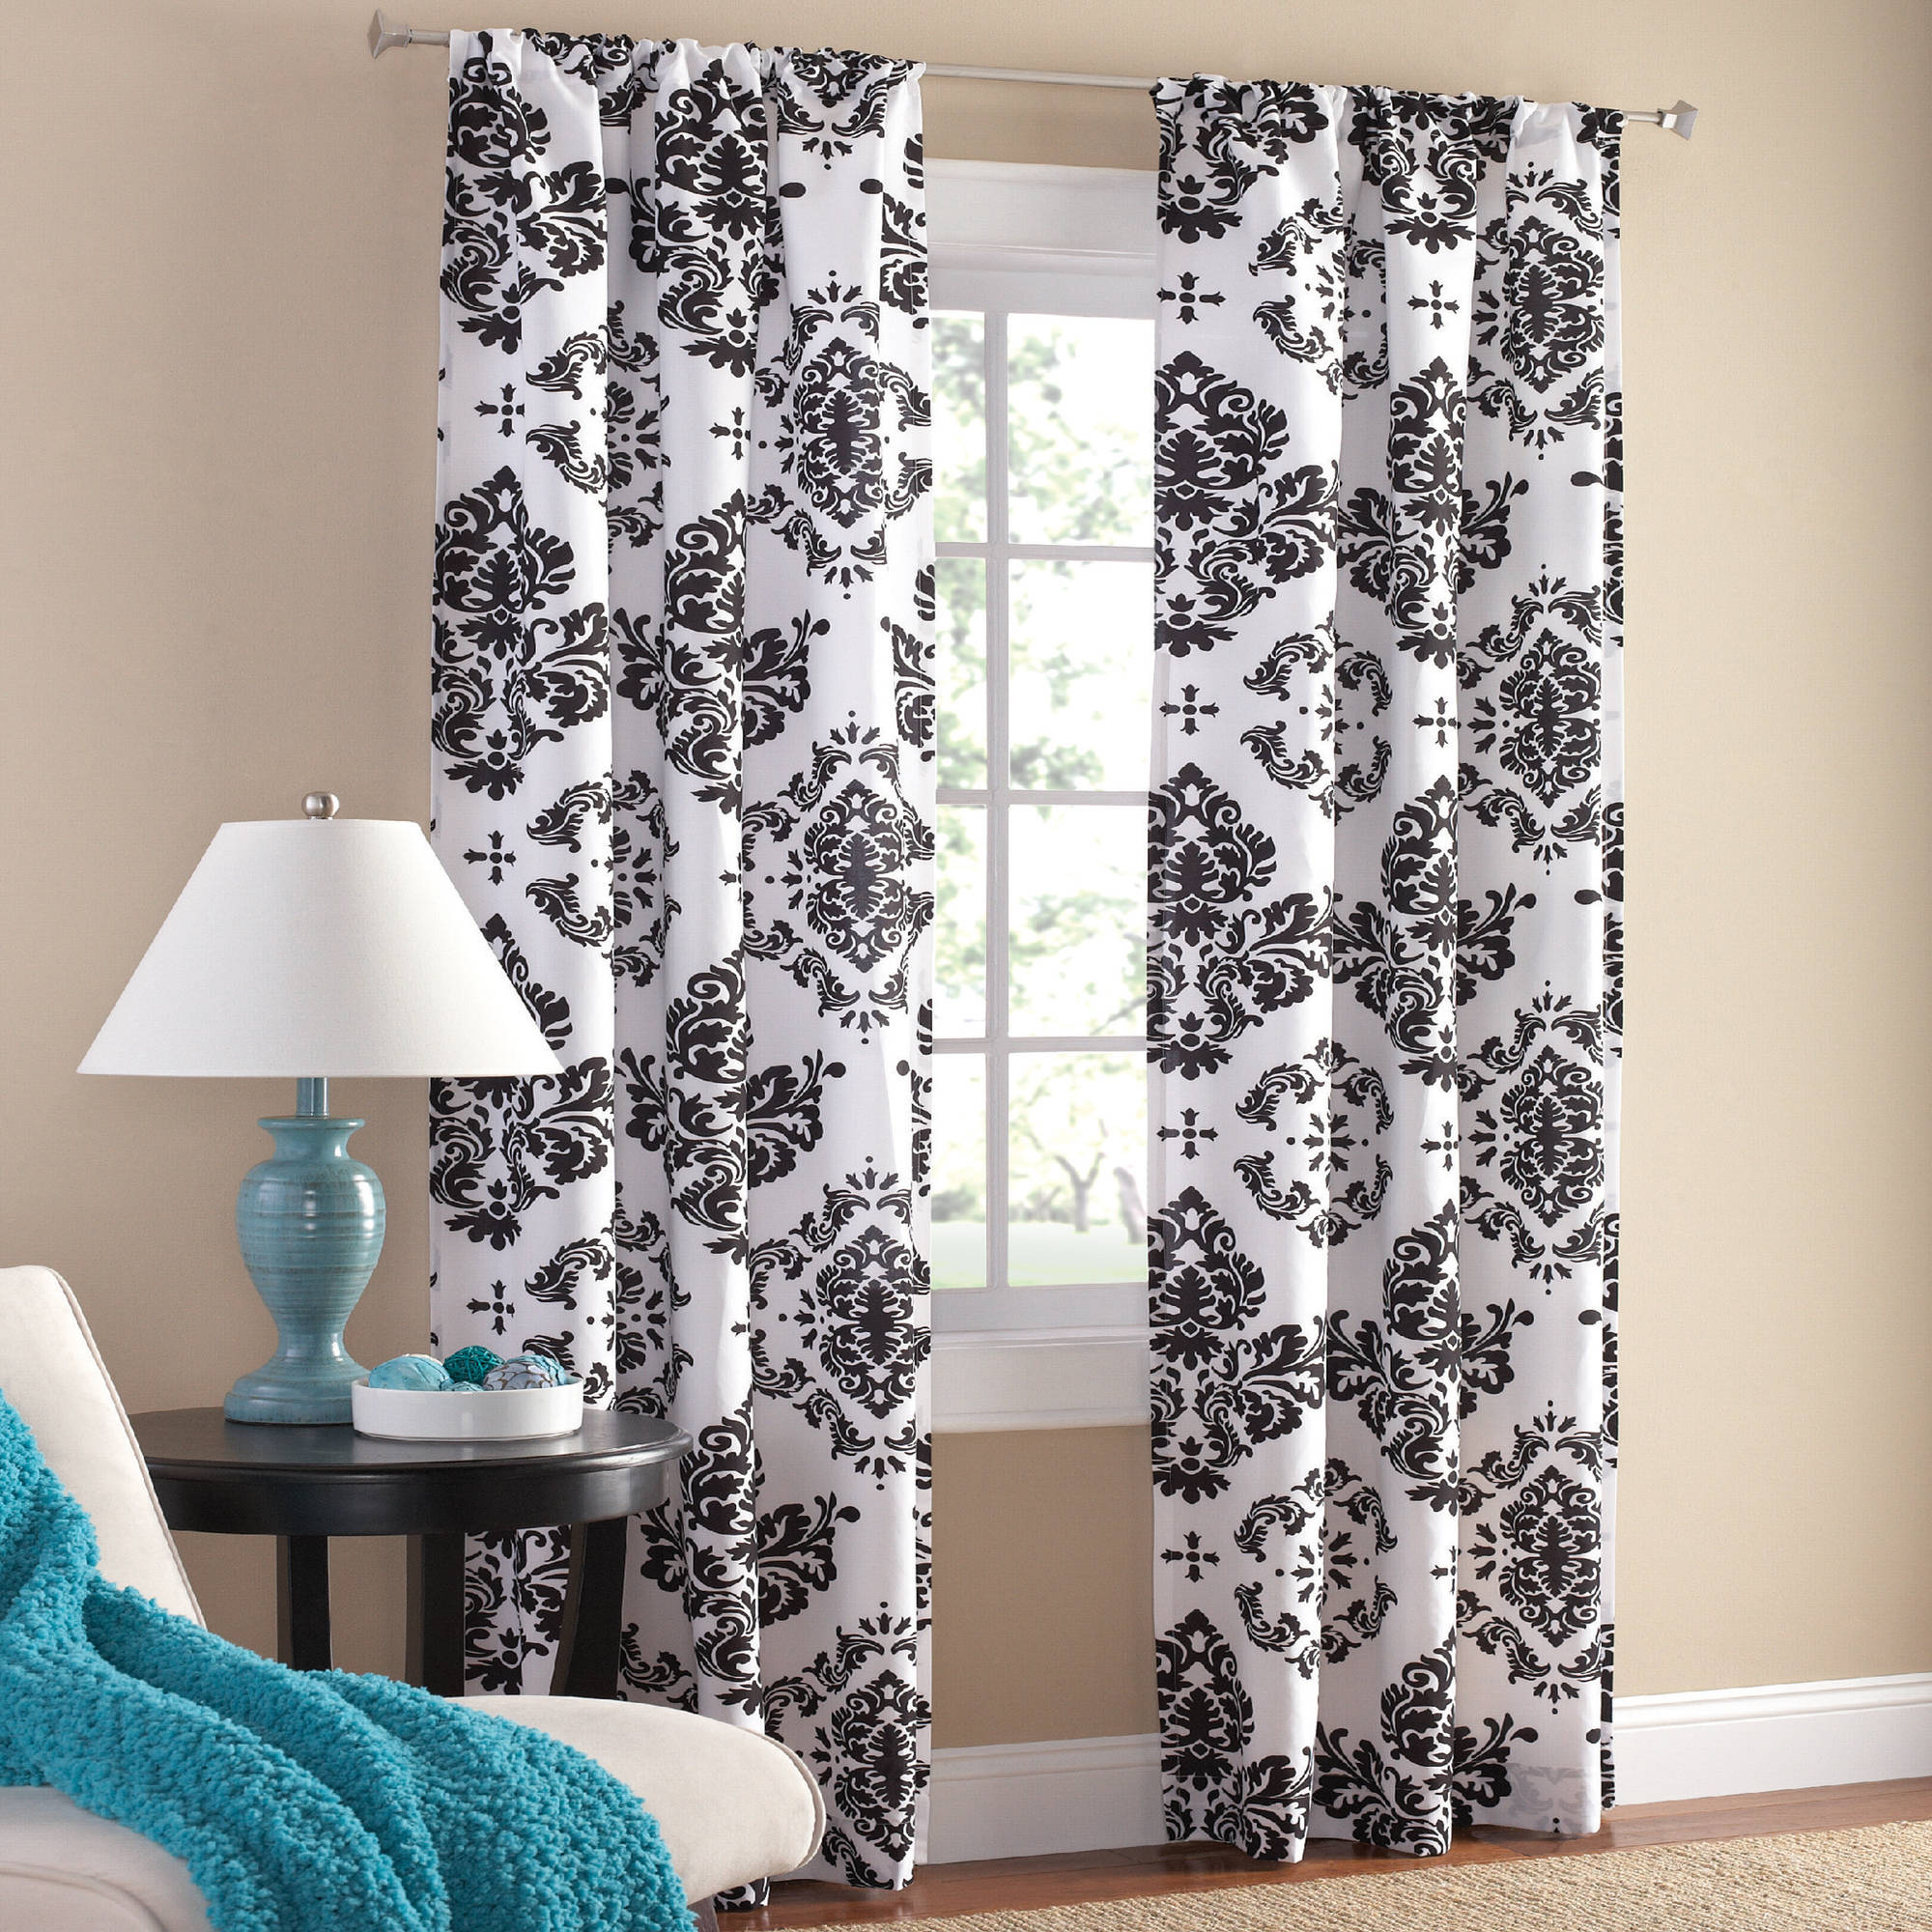 Black and white curtains - Black And White Curtains 8